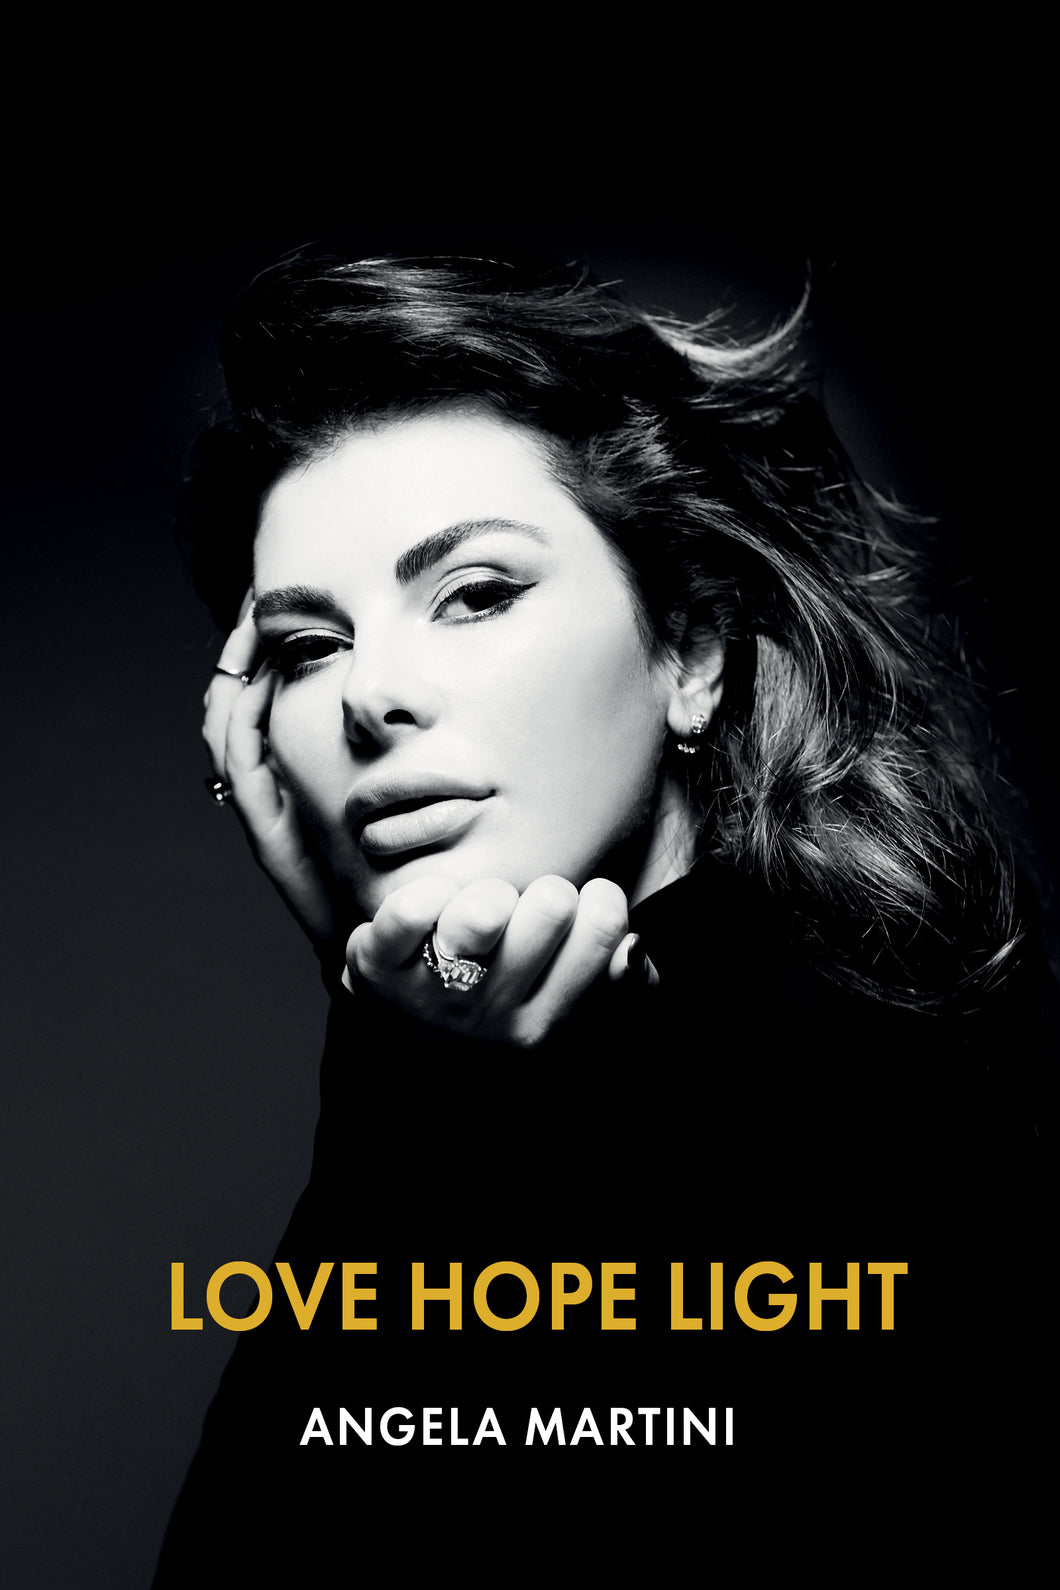 Love Hope Light - $5 off for Pre-Orders only with Exclusive GIFTS!